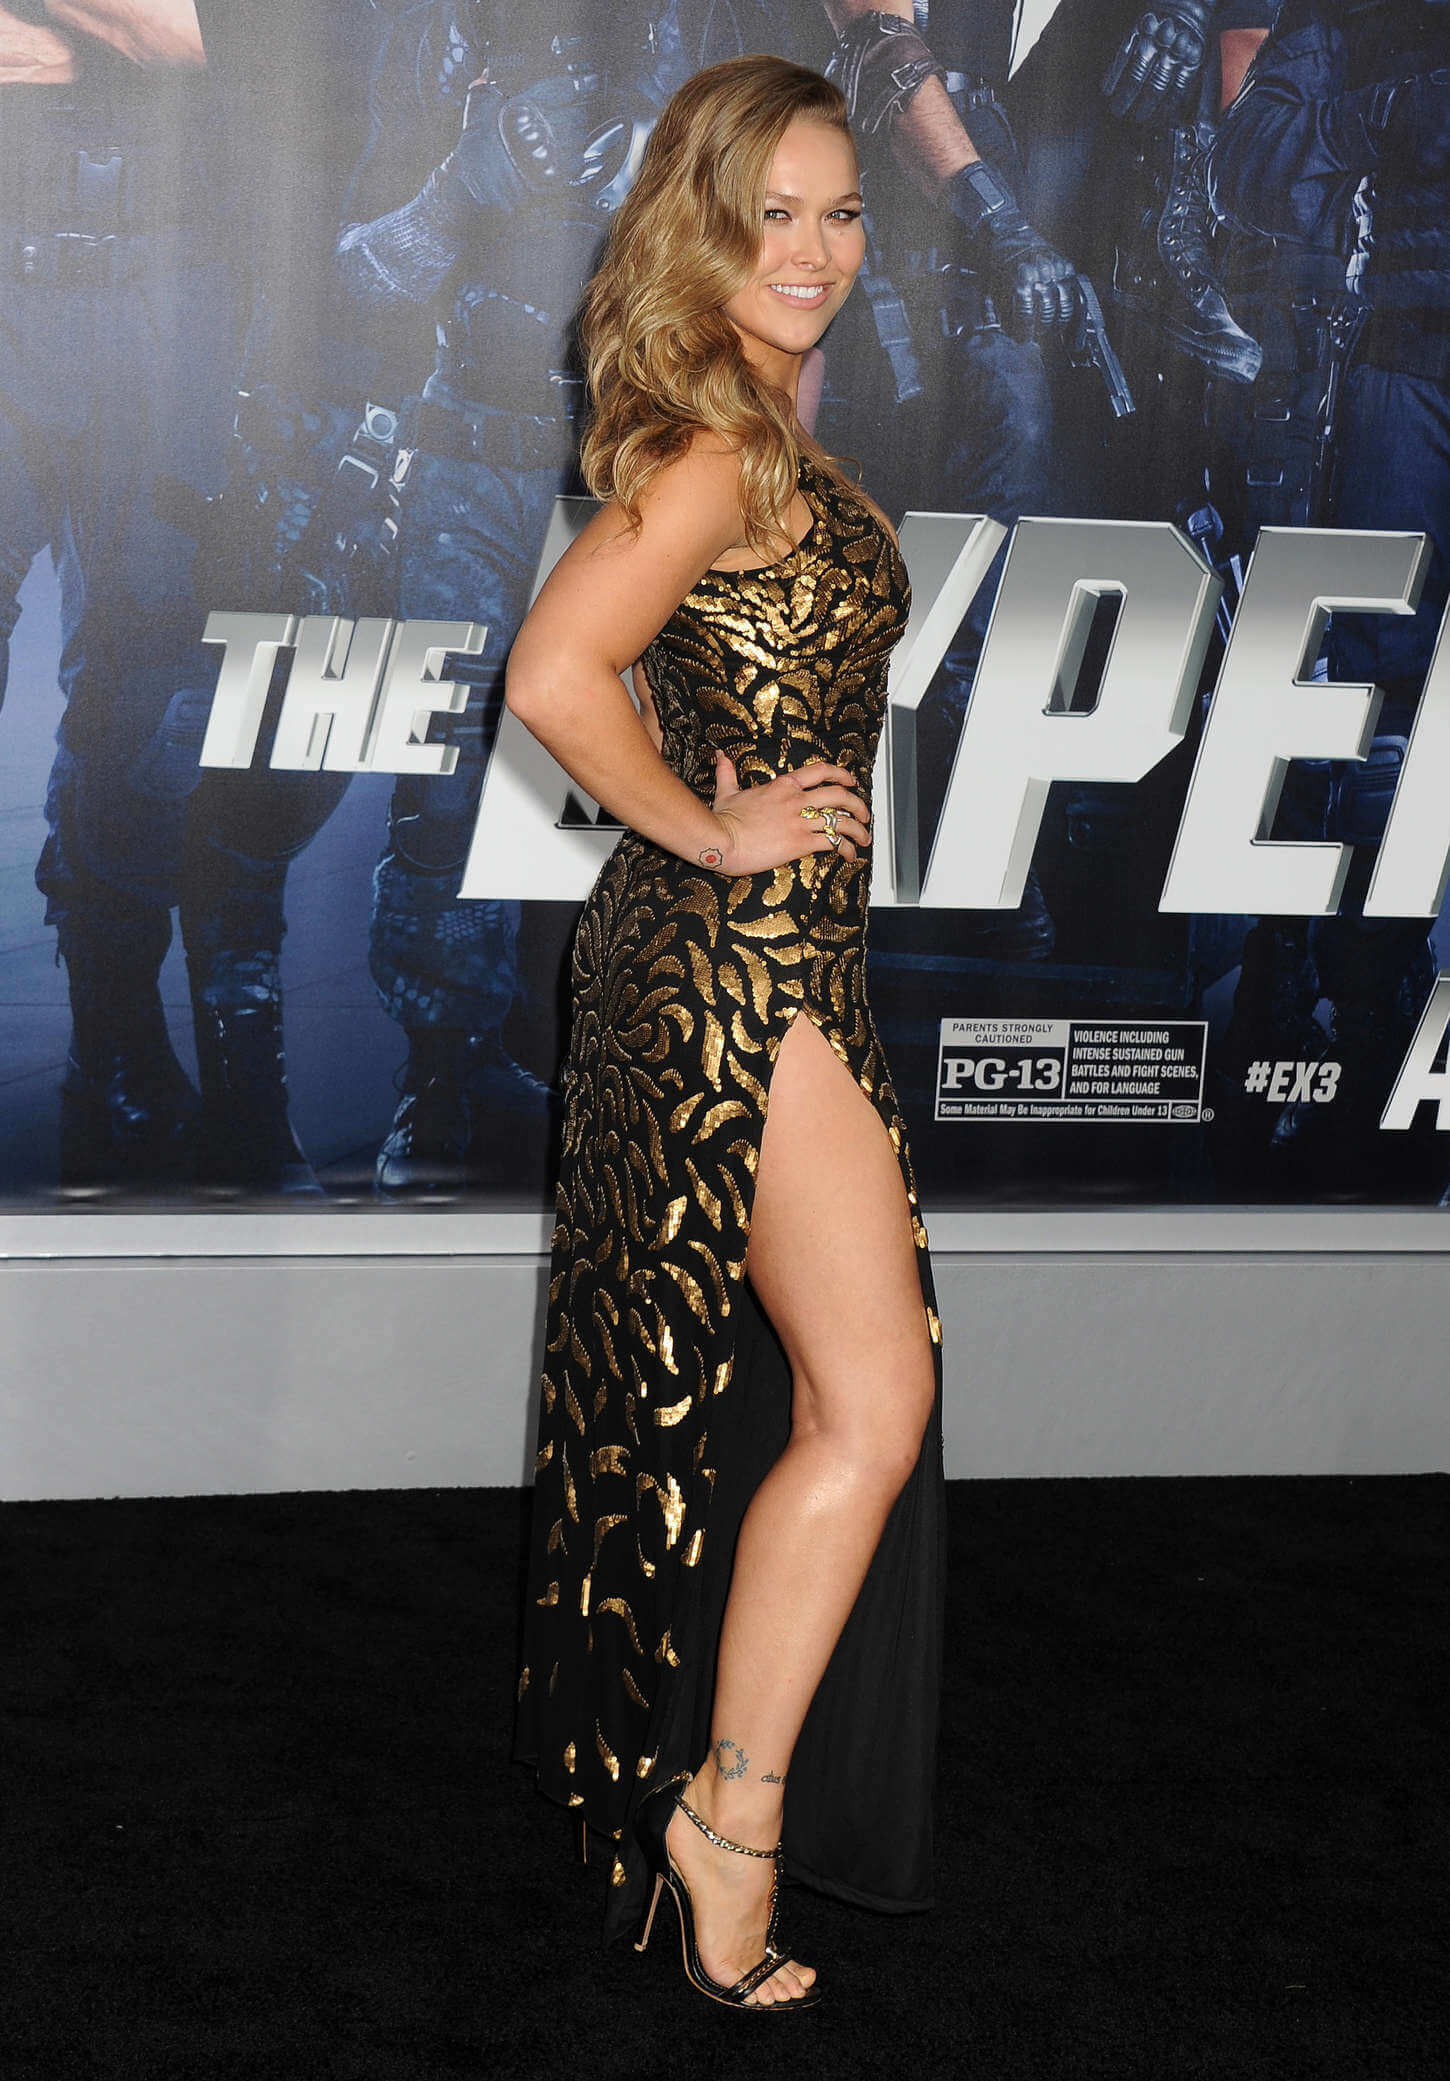 Ronda-Rousey-legs-beautiful-pic